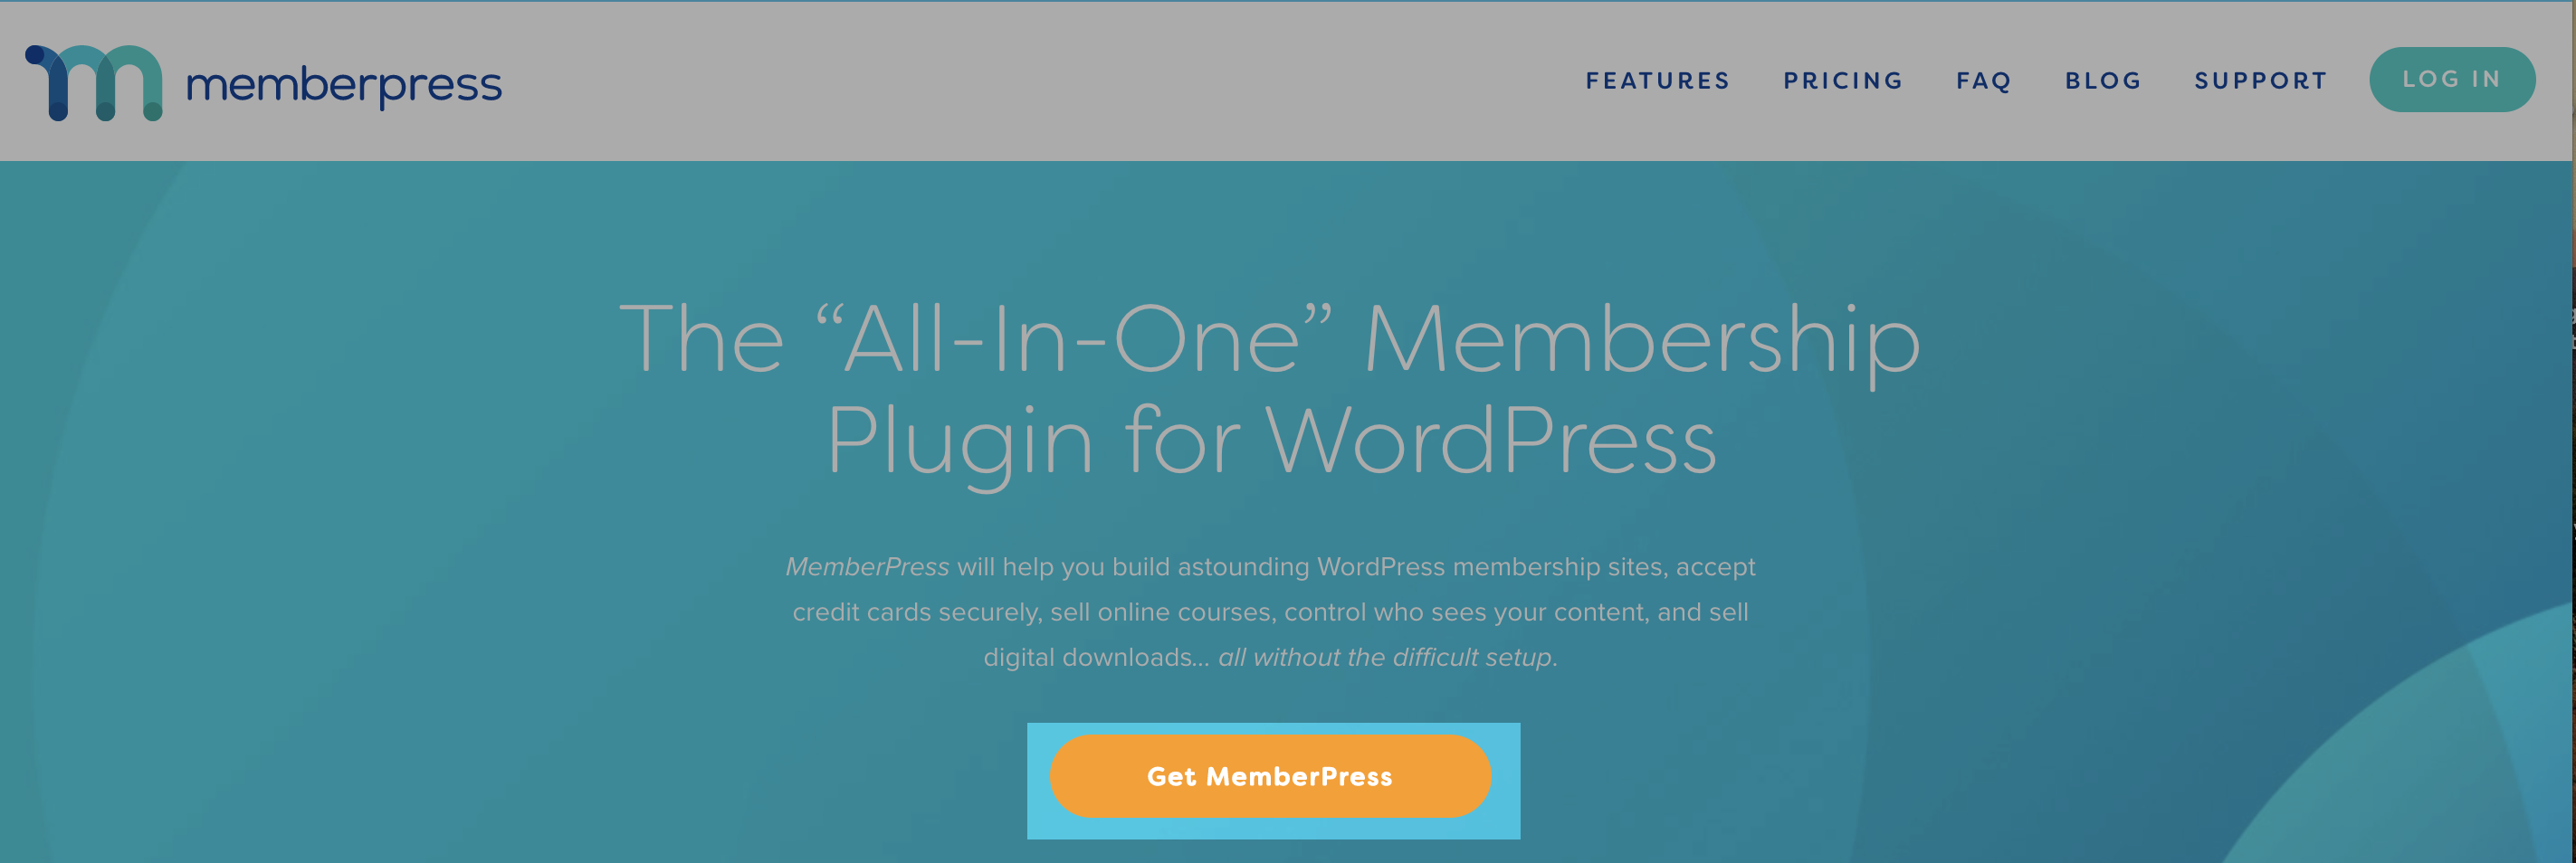 How to use membrepress